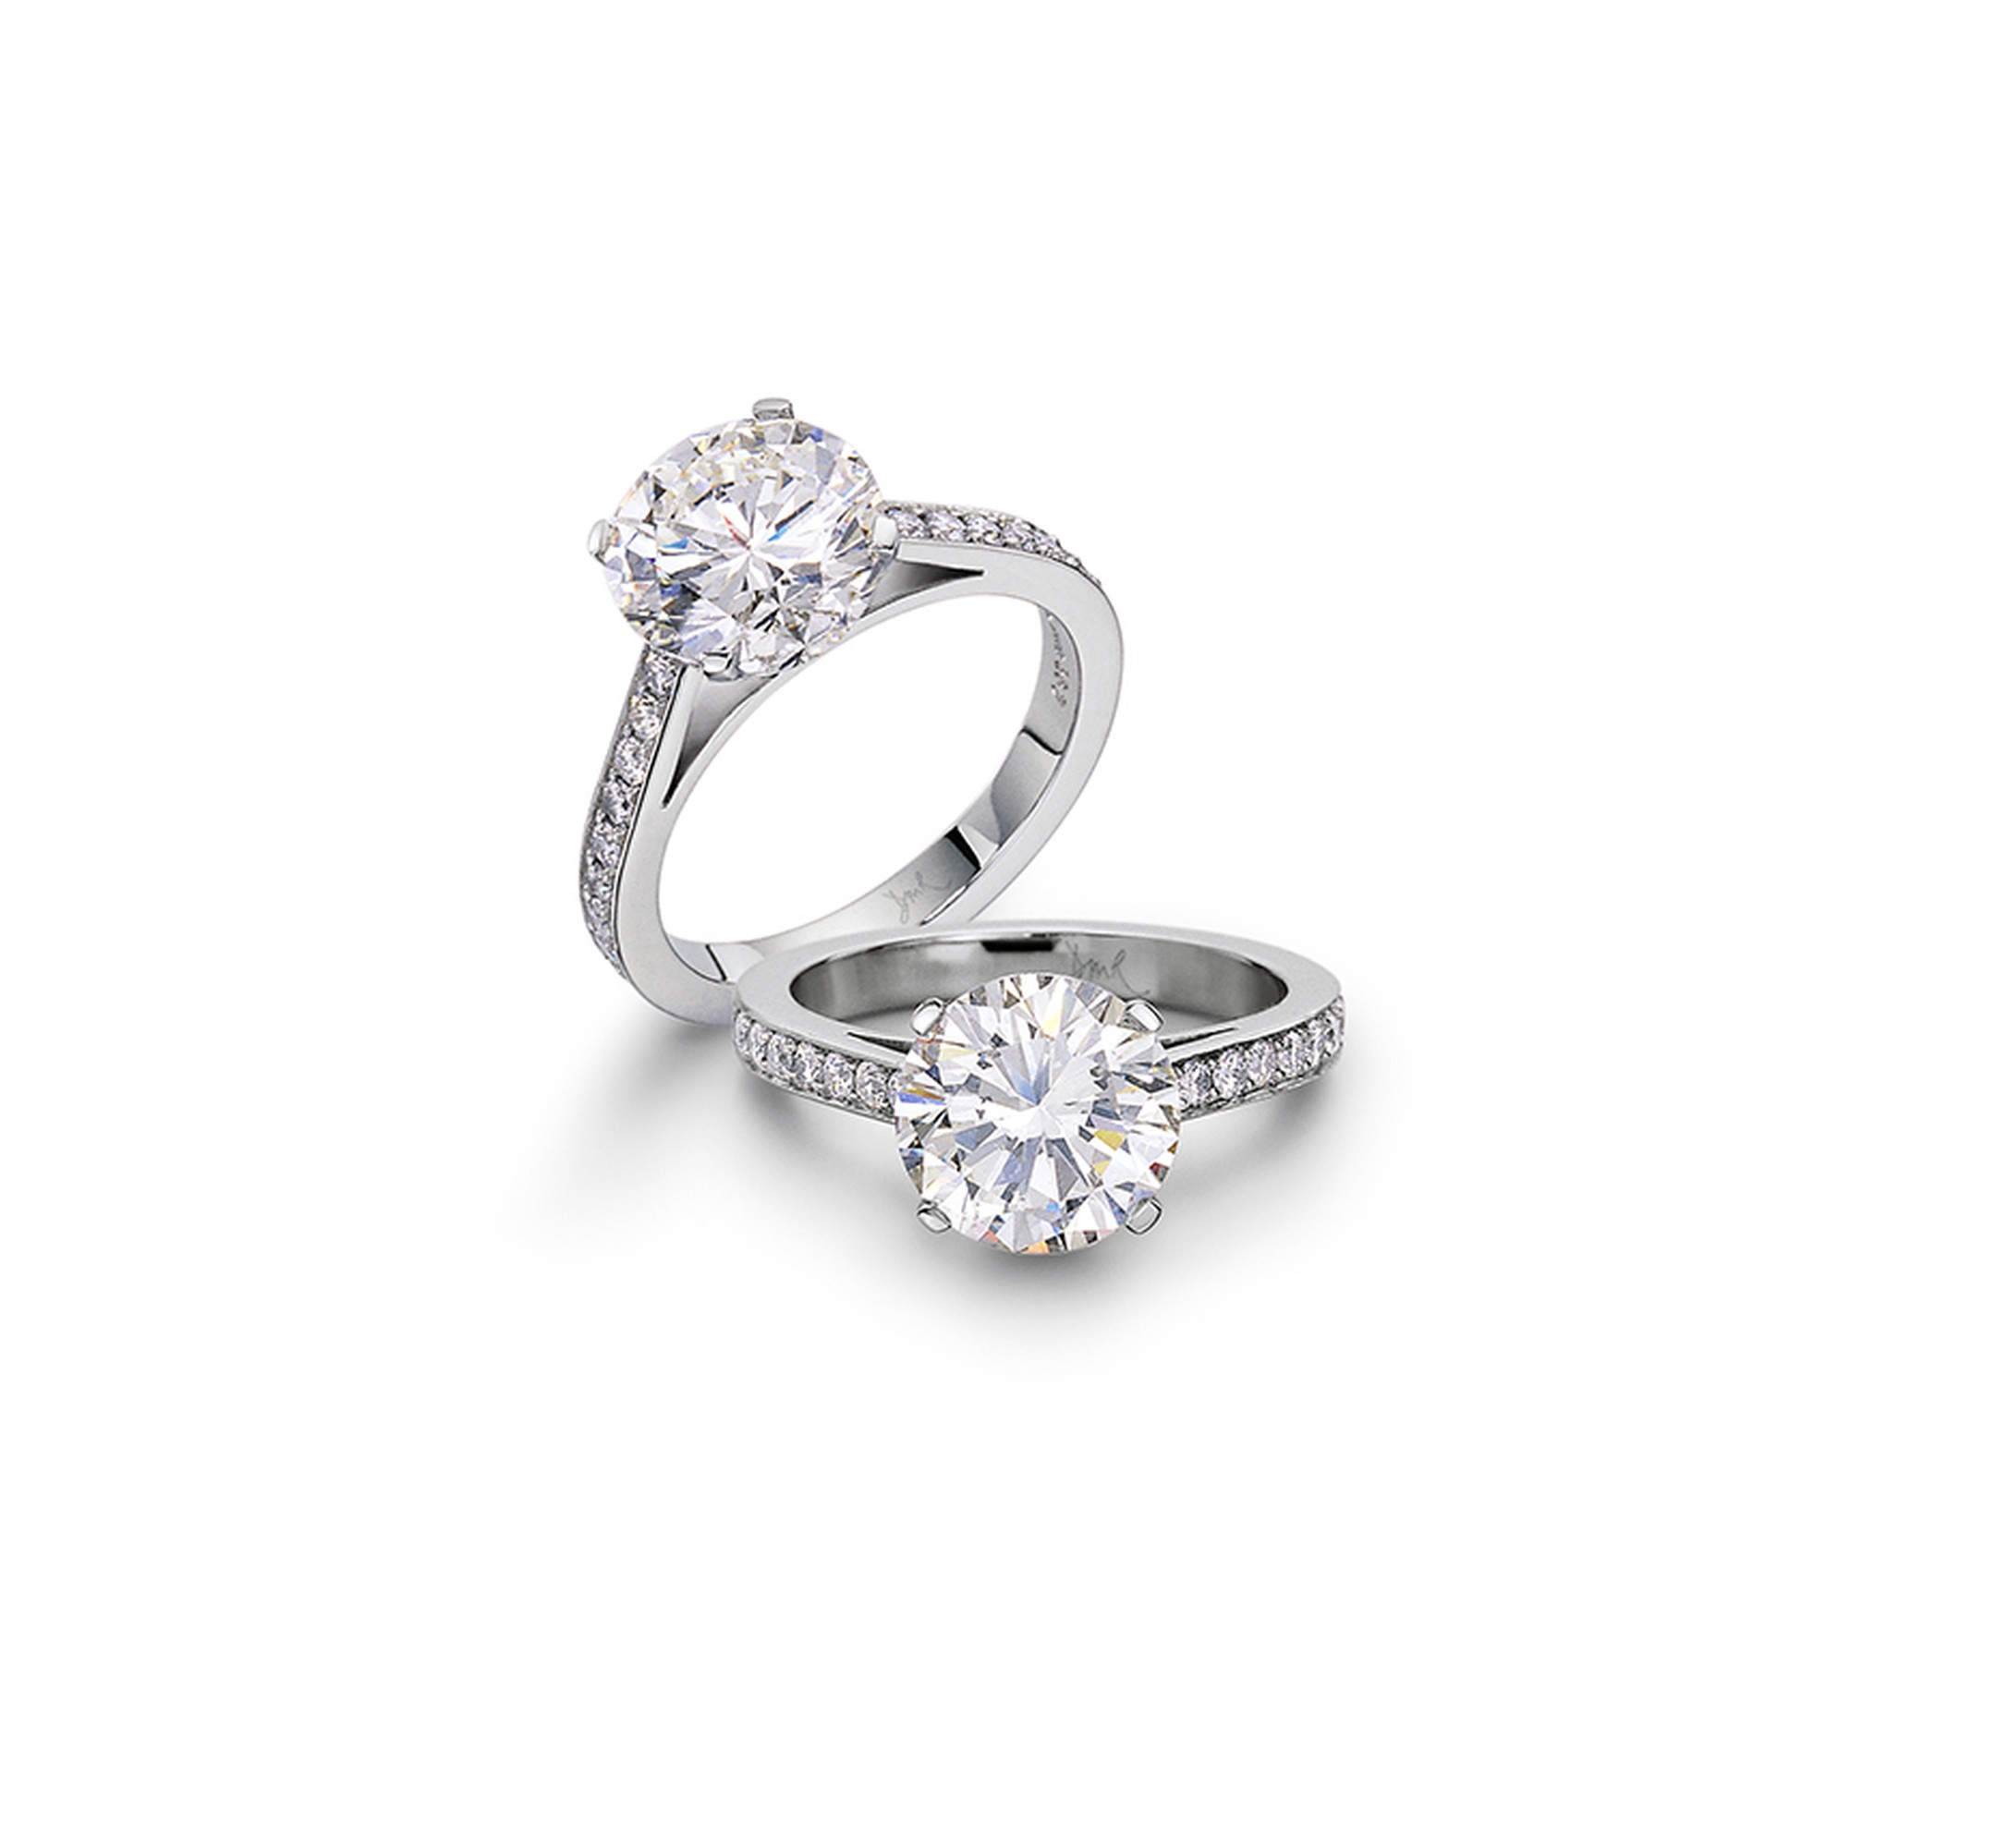 David Robinson Speechless Engagement Ring featuring a 2.54ct round brilliant-cut diamond with diamond-set shoulders in platinum (£47,500).